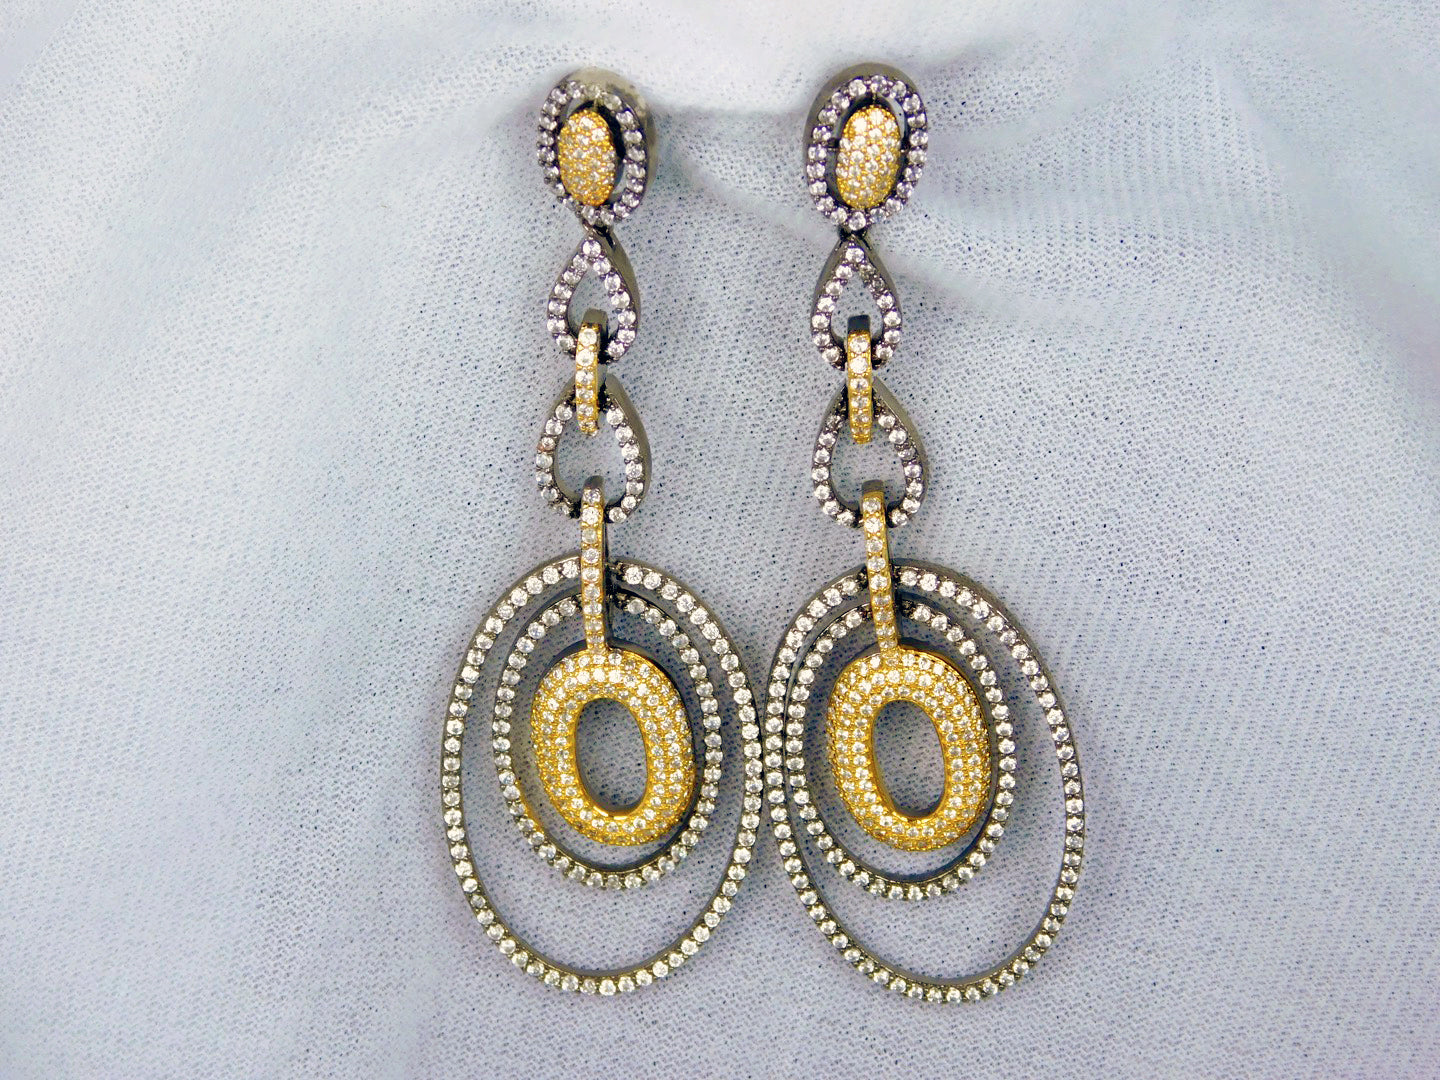 Earrings: American Diamond & 1 gm Gold-plated Collection